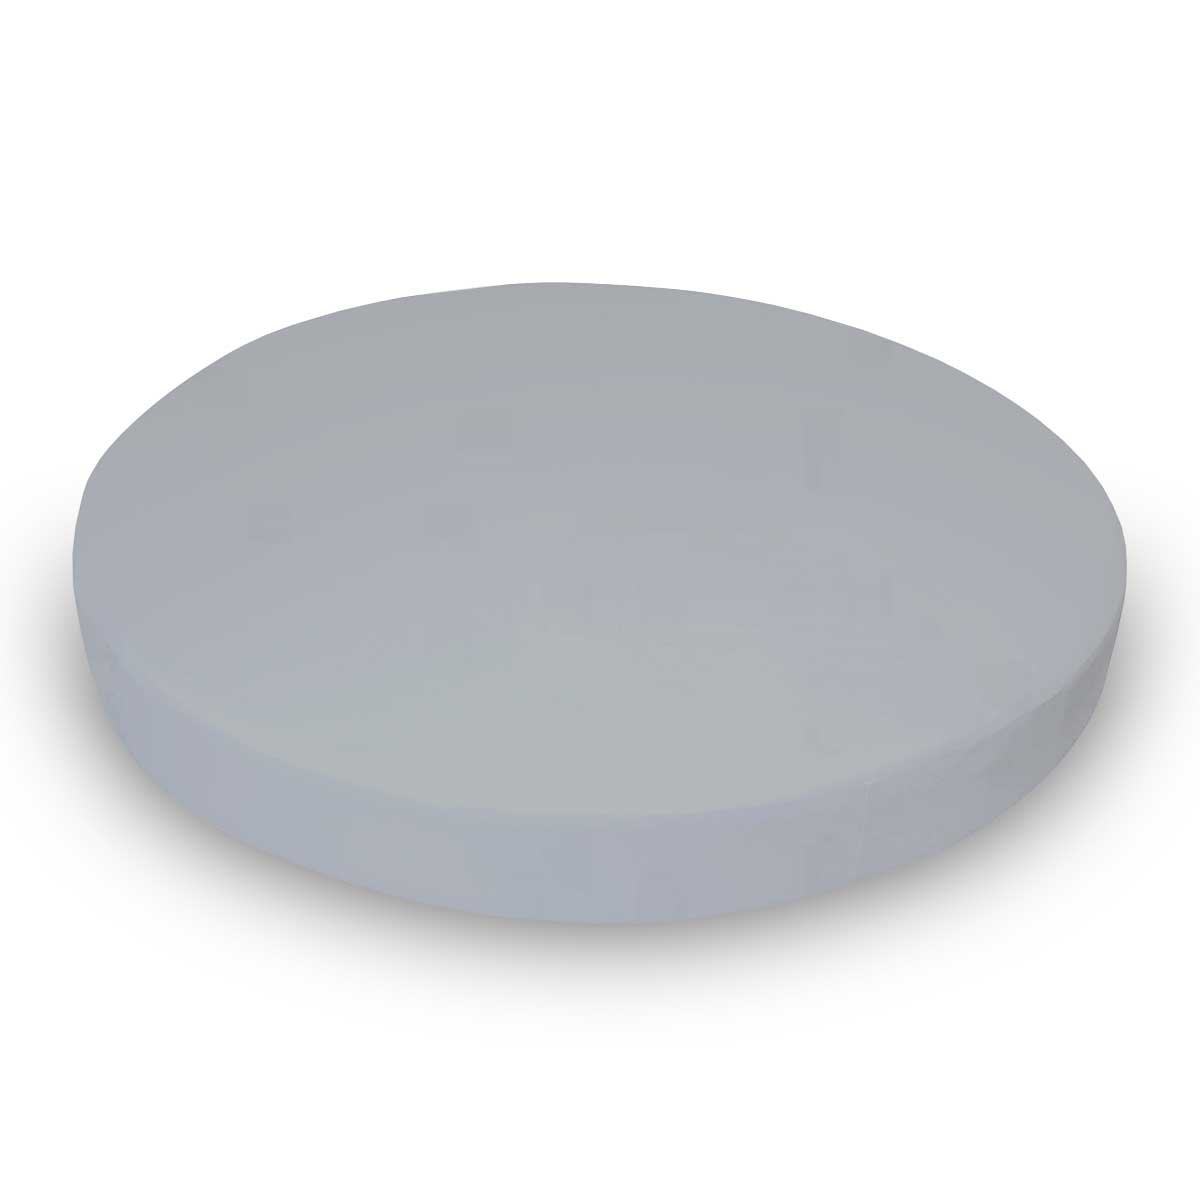 SheetWorld Fitted Oval (Stokke Mini) - Solid Grey Woven - Made In USA by SHEETWORLD.COM